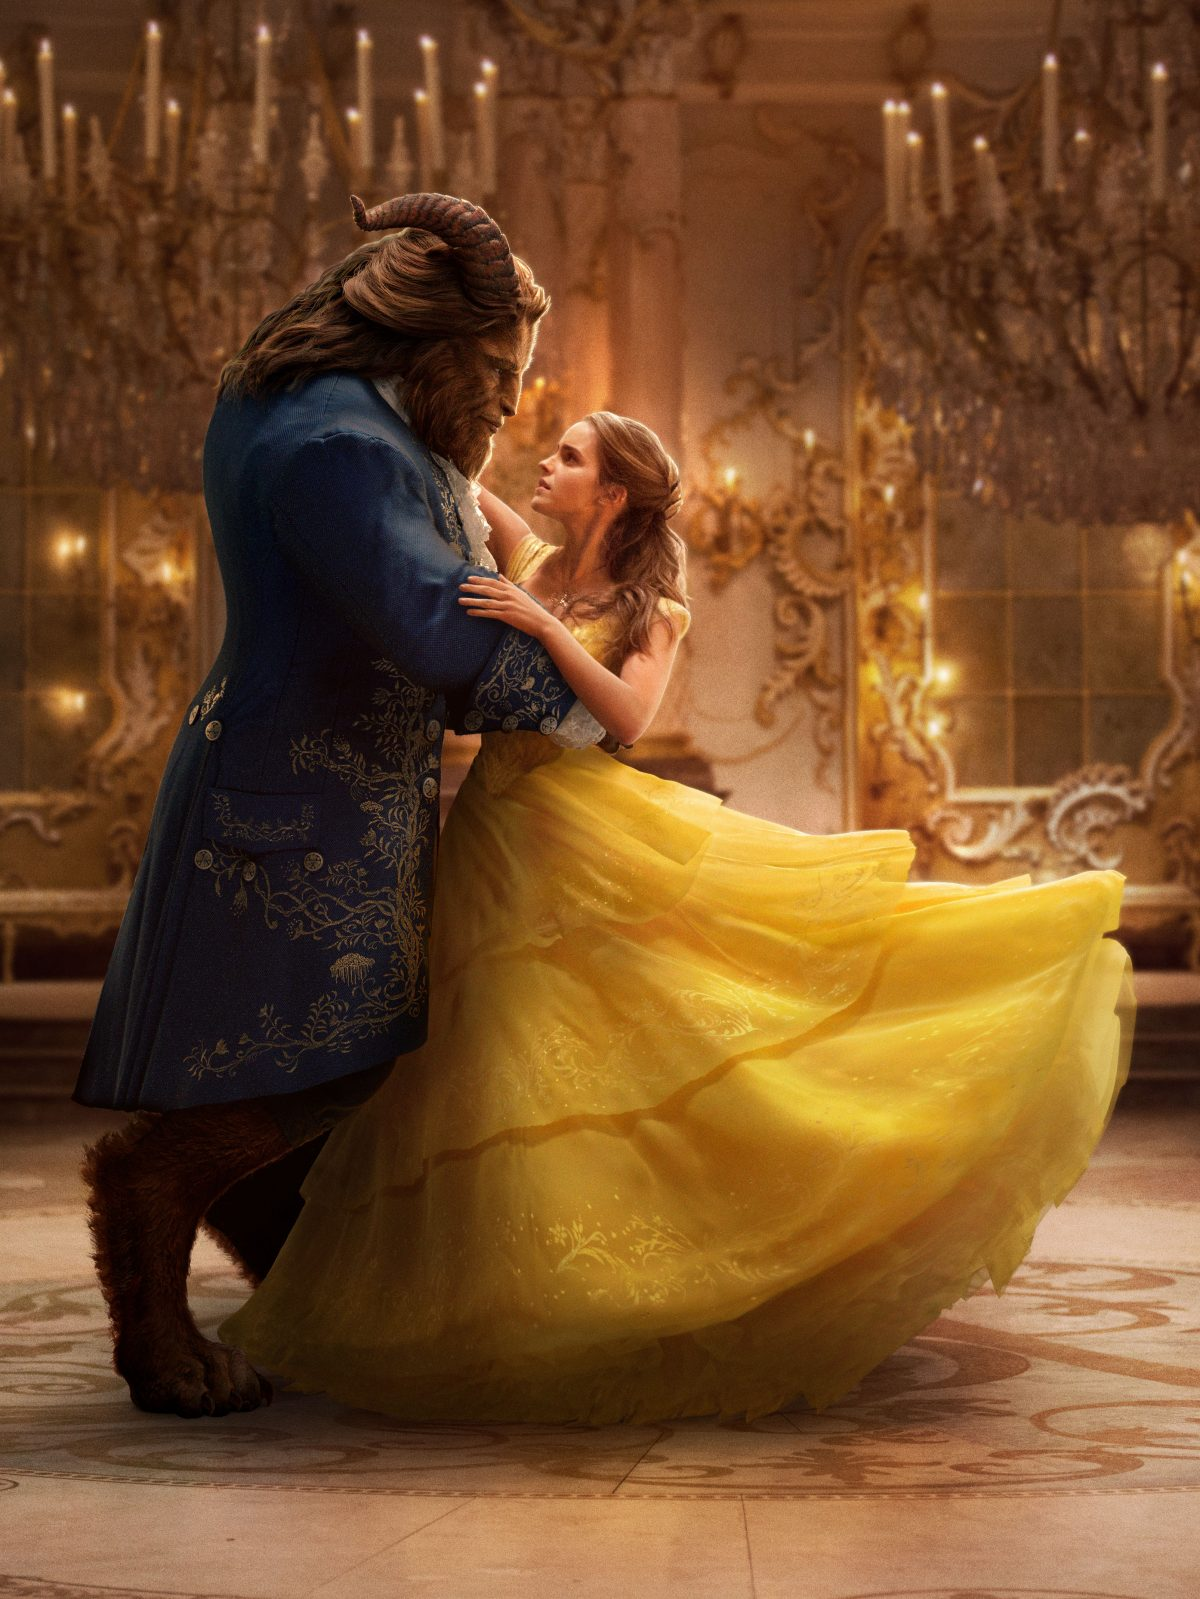 New beauty and the beast movie